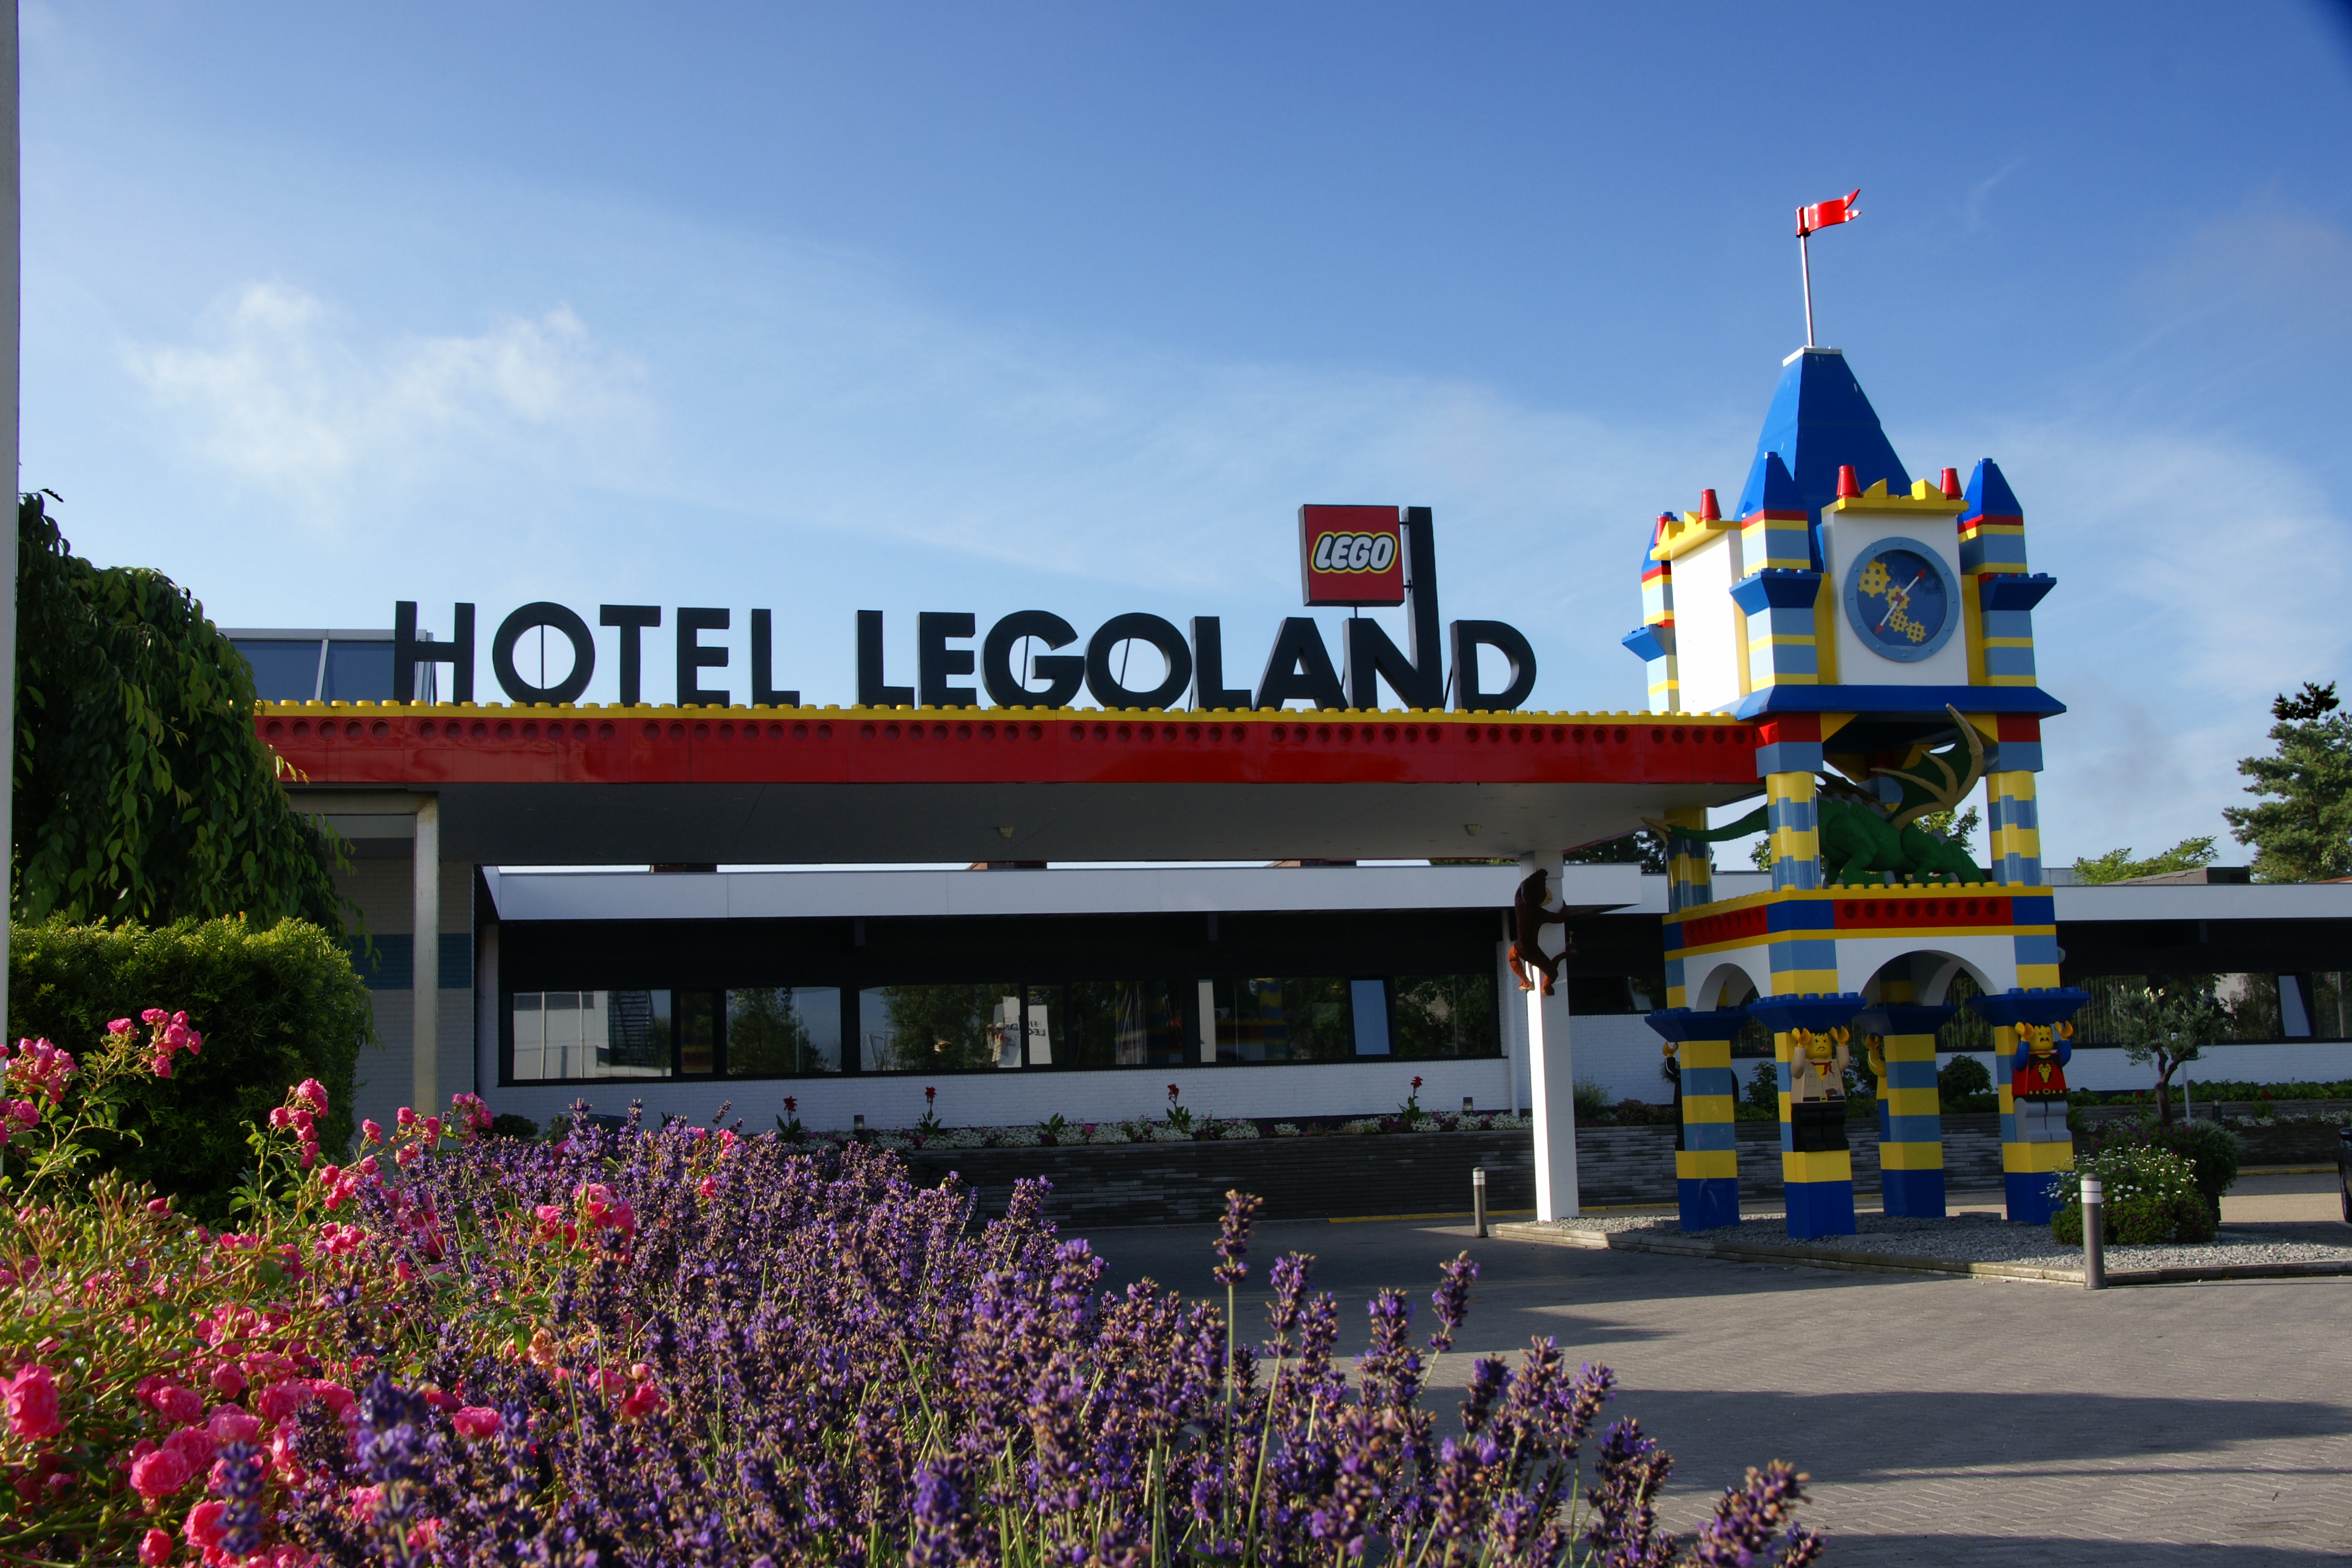 Park and hotel Legoland in Denmark: tours and photos